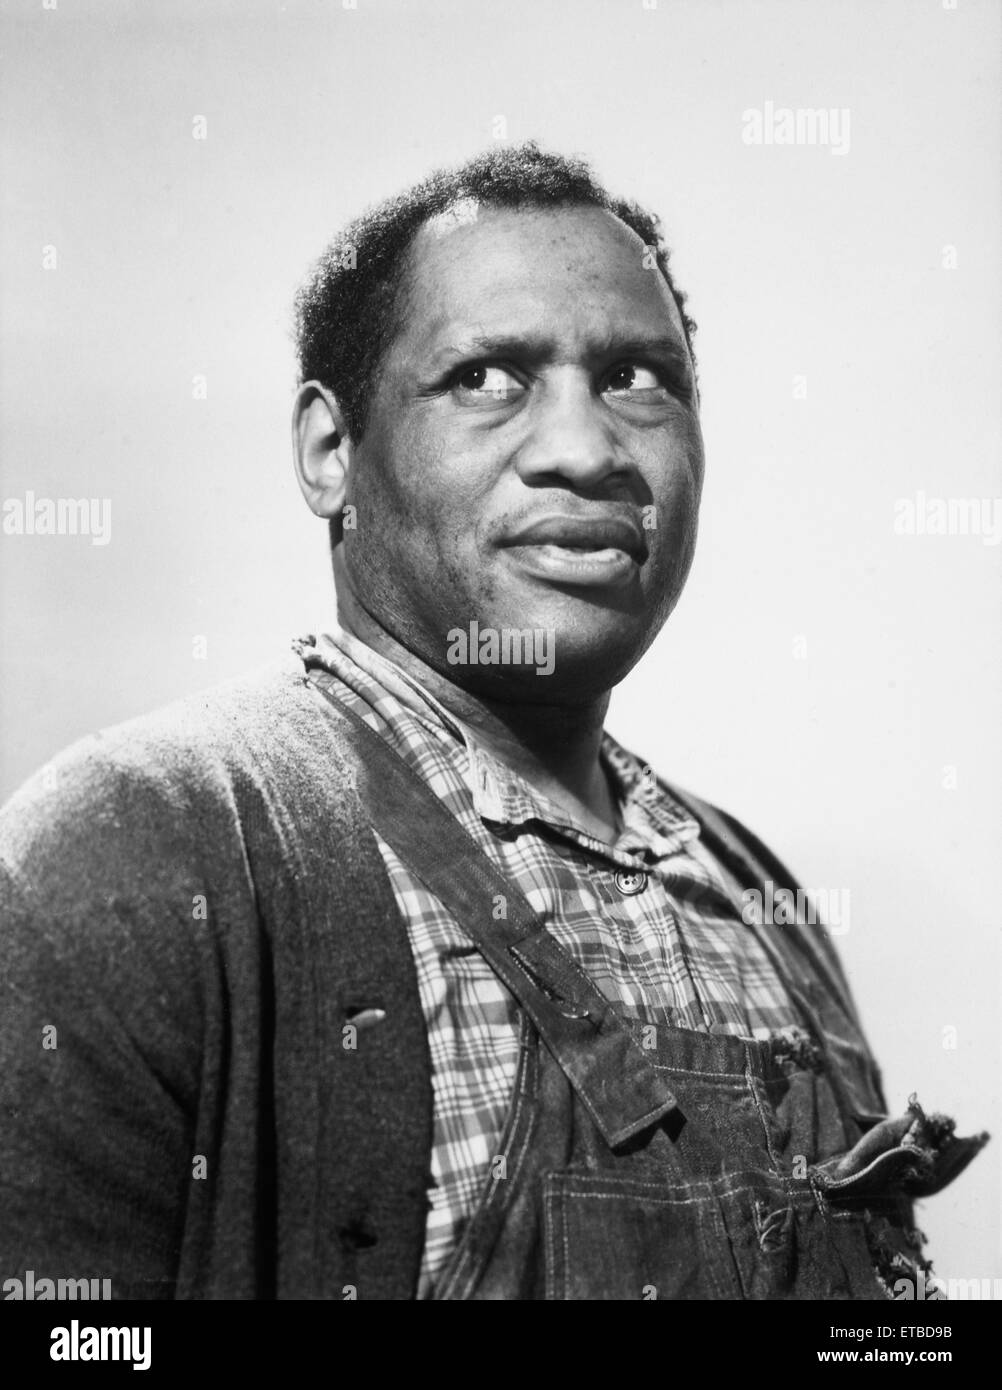 Paul Robeson, Portrait from the Film 'Tales of Manhattan', 1942 - Stock Image